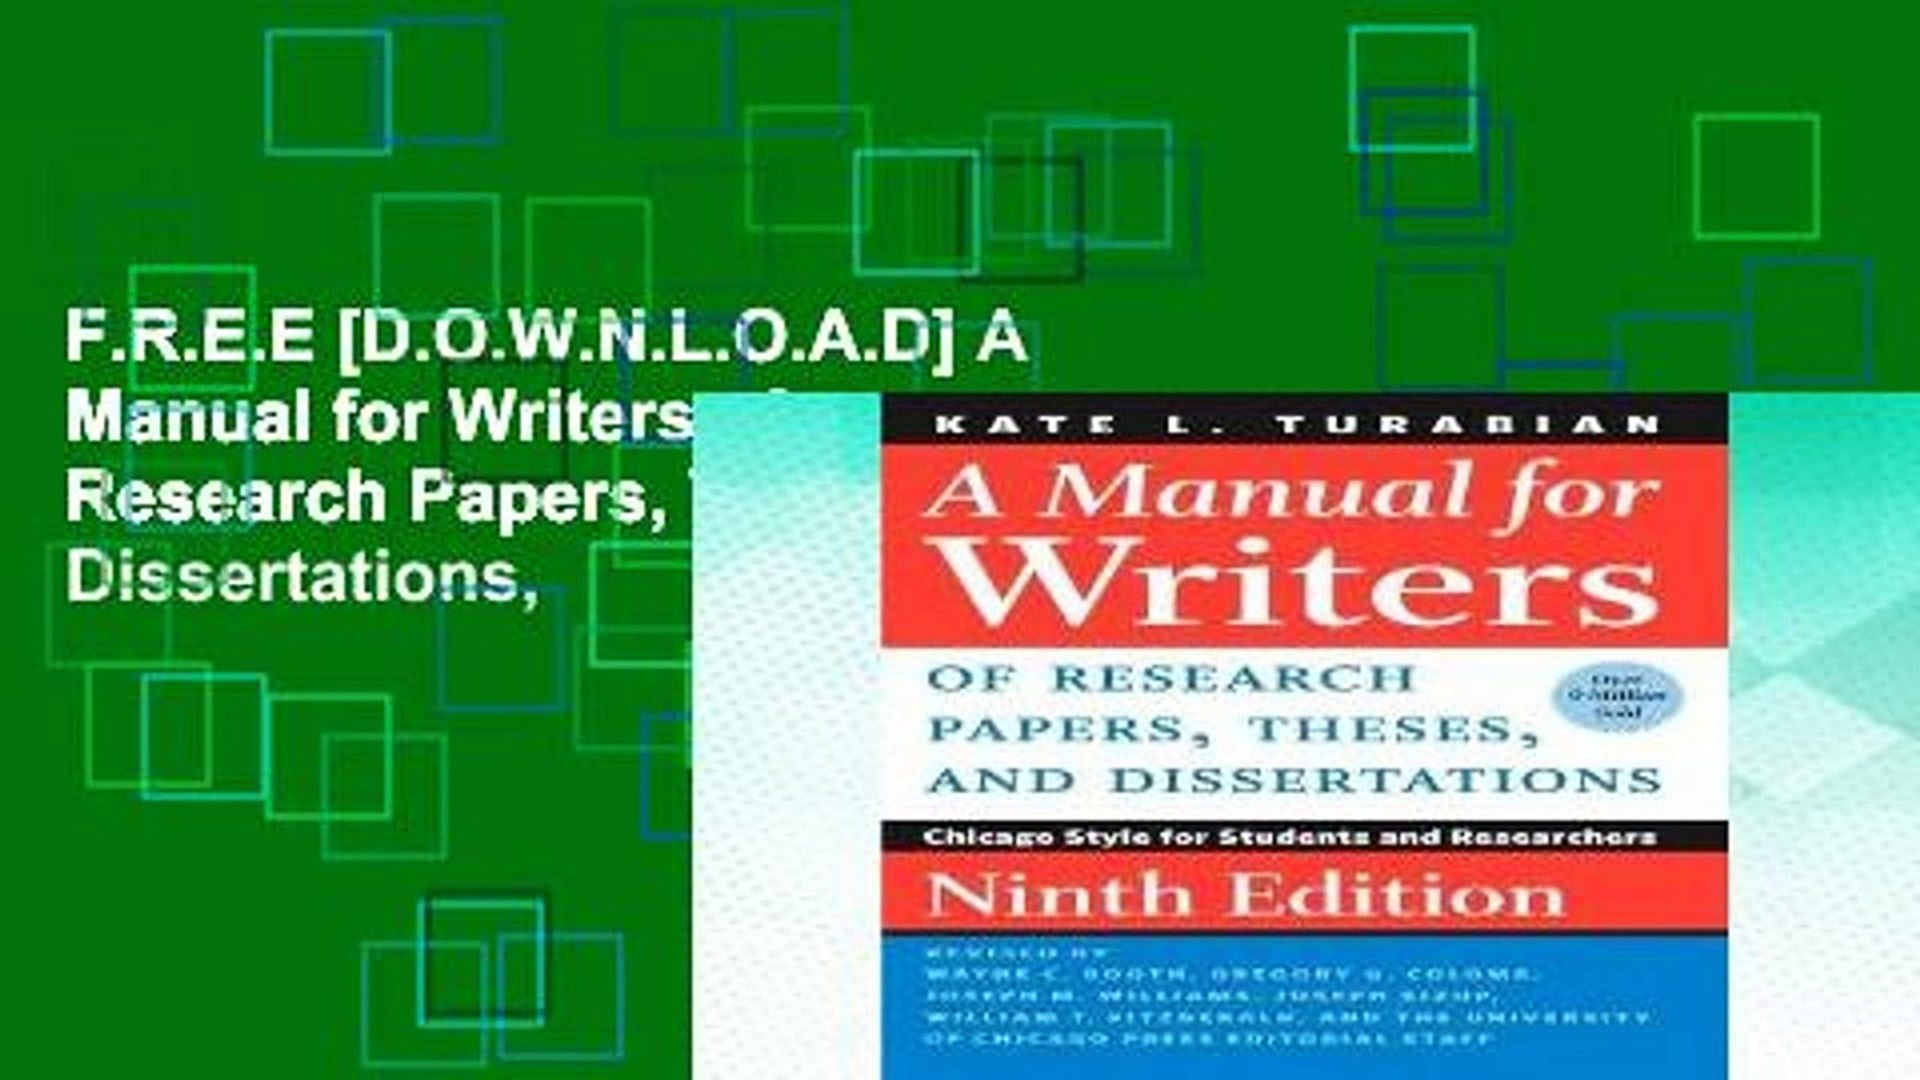 016 Manual For Writers Of Research Papers Theses And Dissertations Paper X1080 Sensational A Ed. 8 8th Edition Ninth Pdf Full